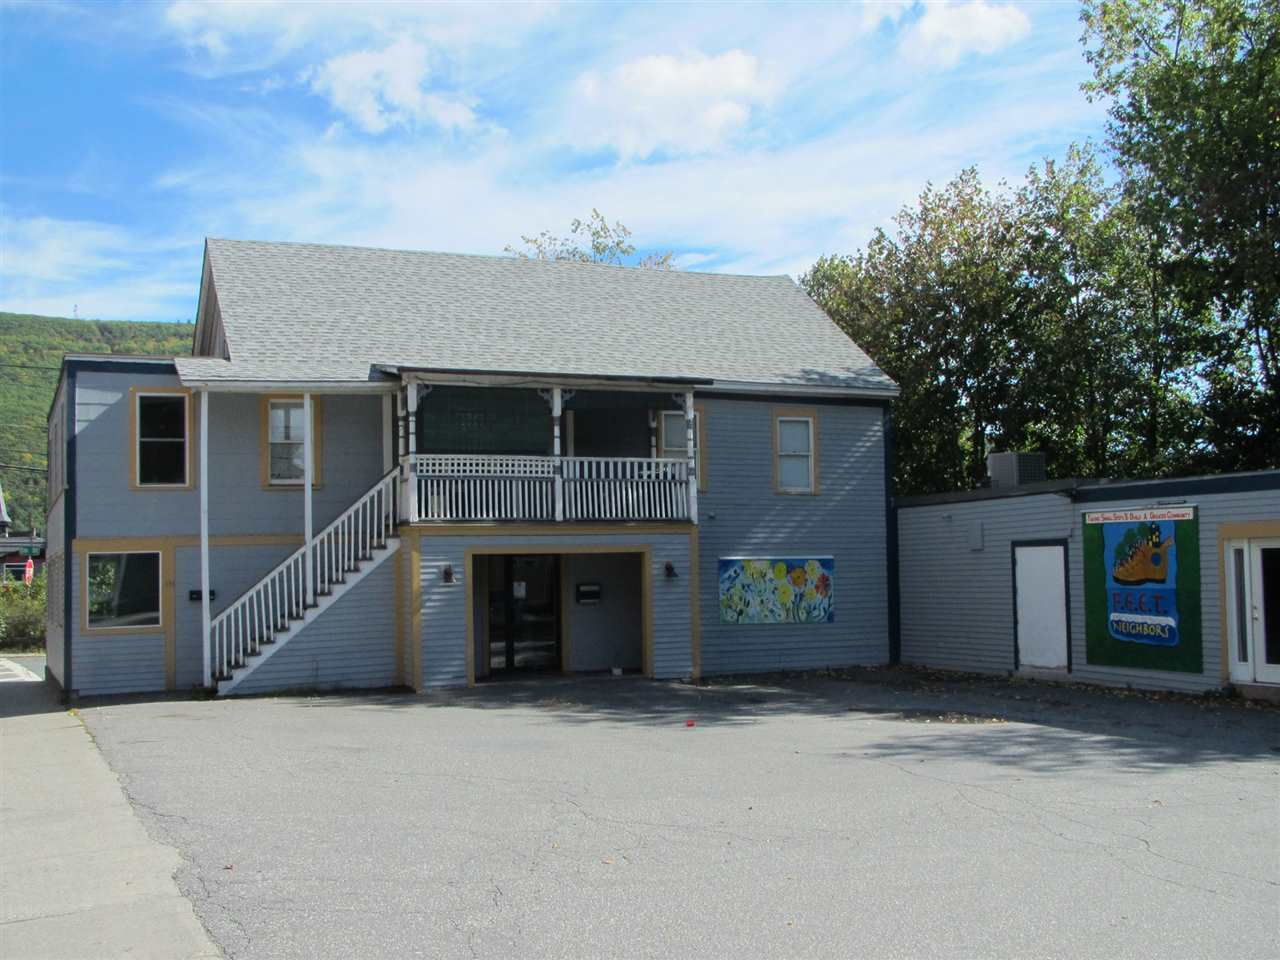 Commercial Property For Sale In Brattleboro Vt